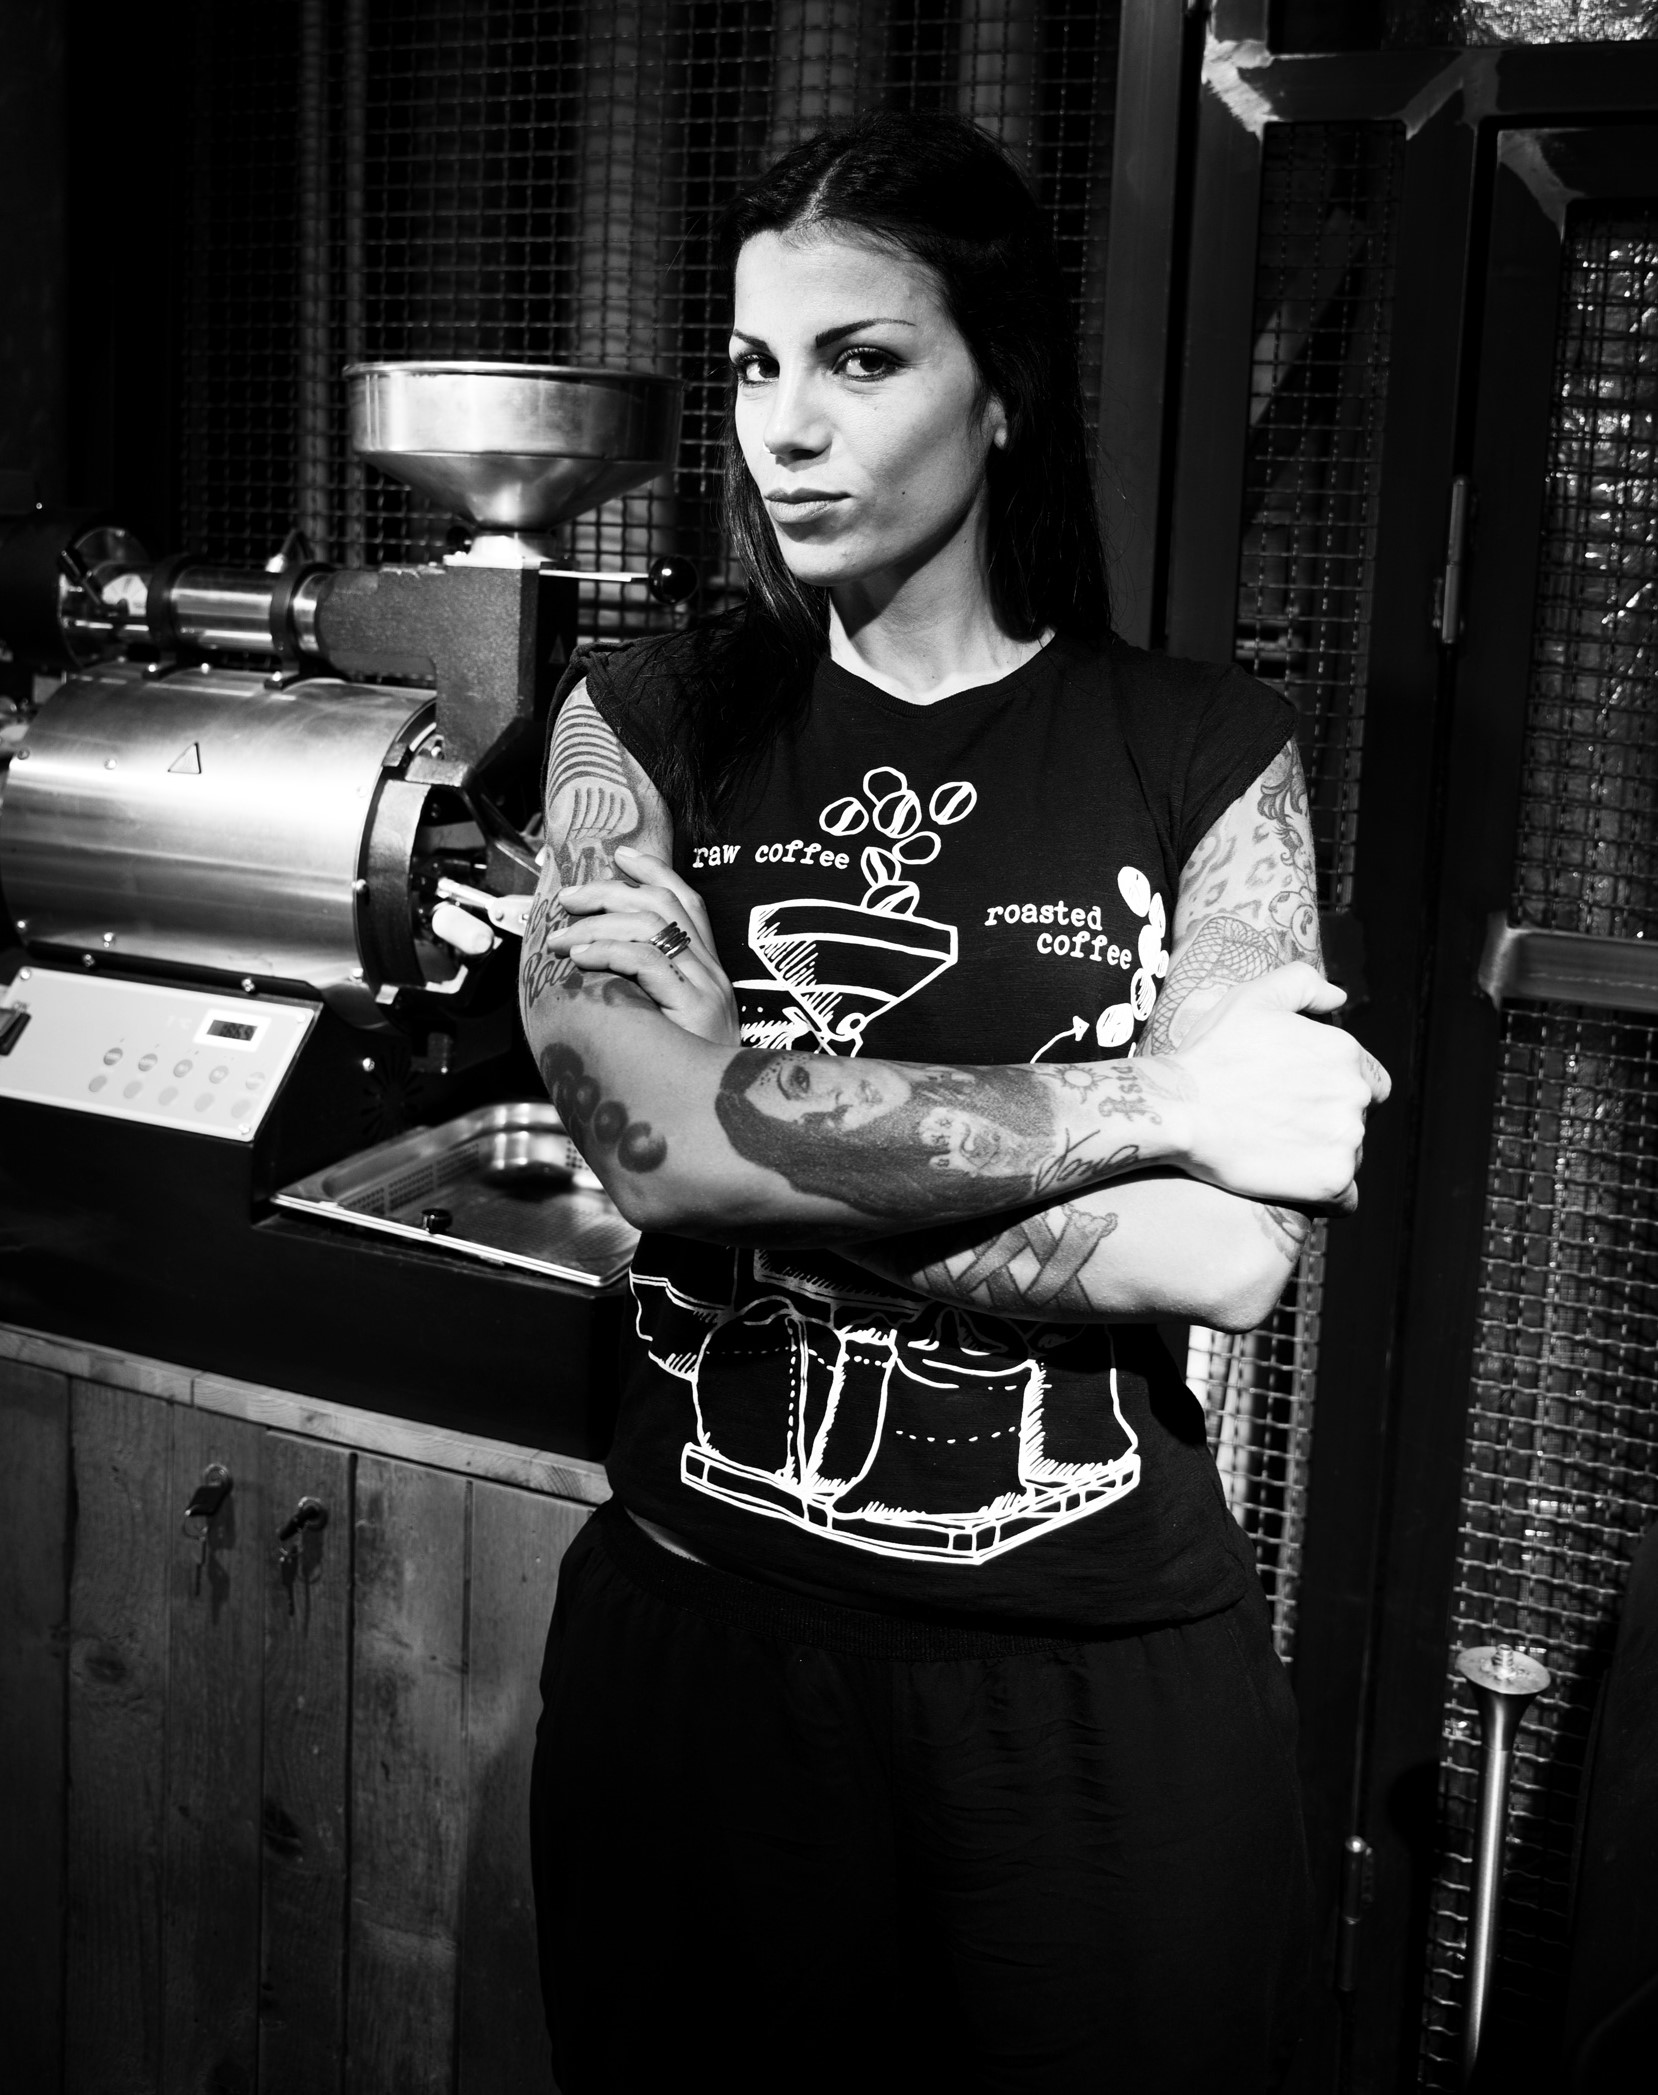 Tattoos and coffee